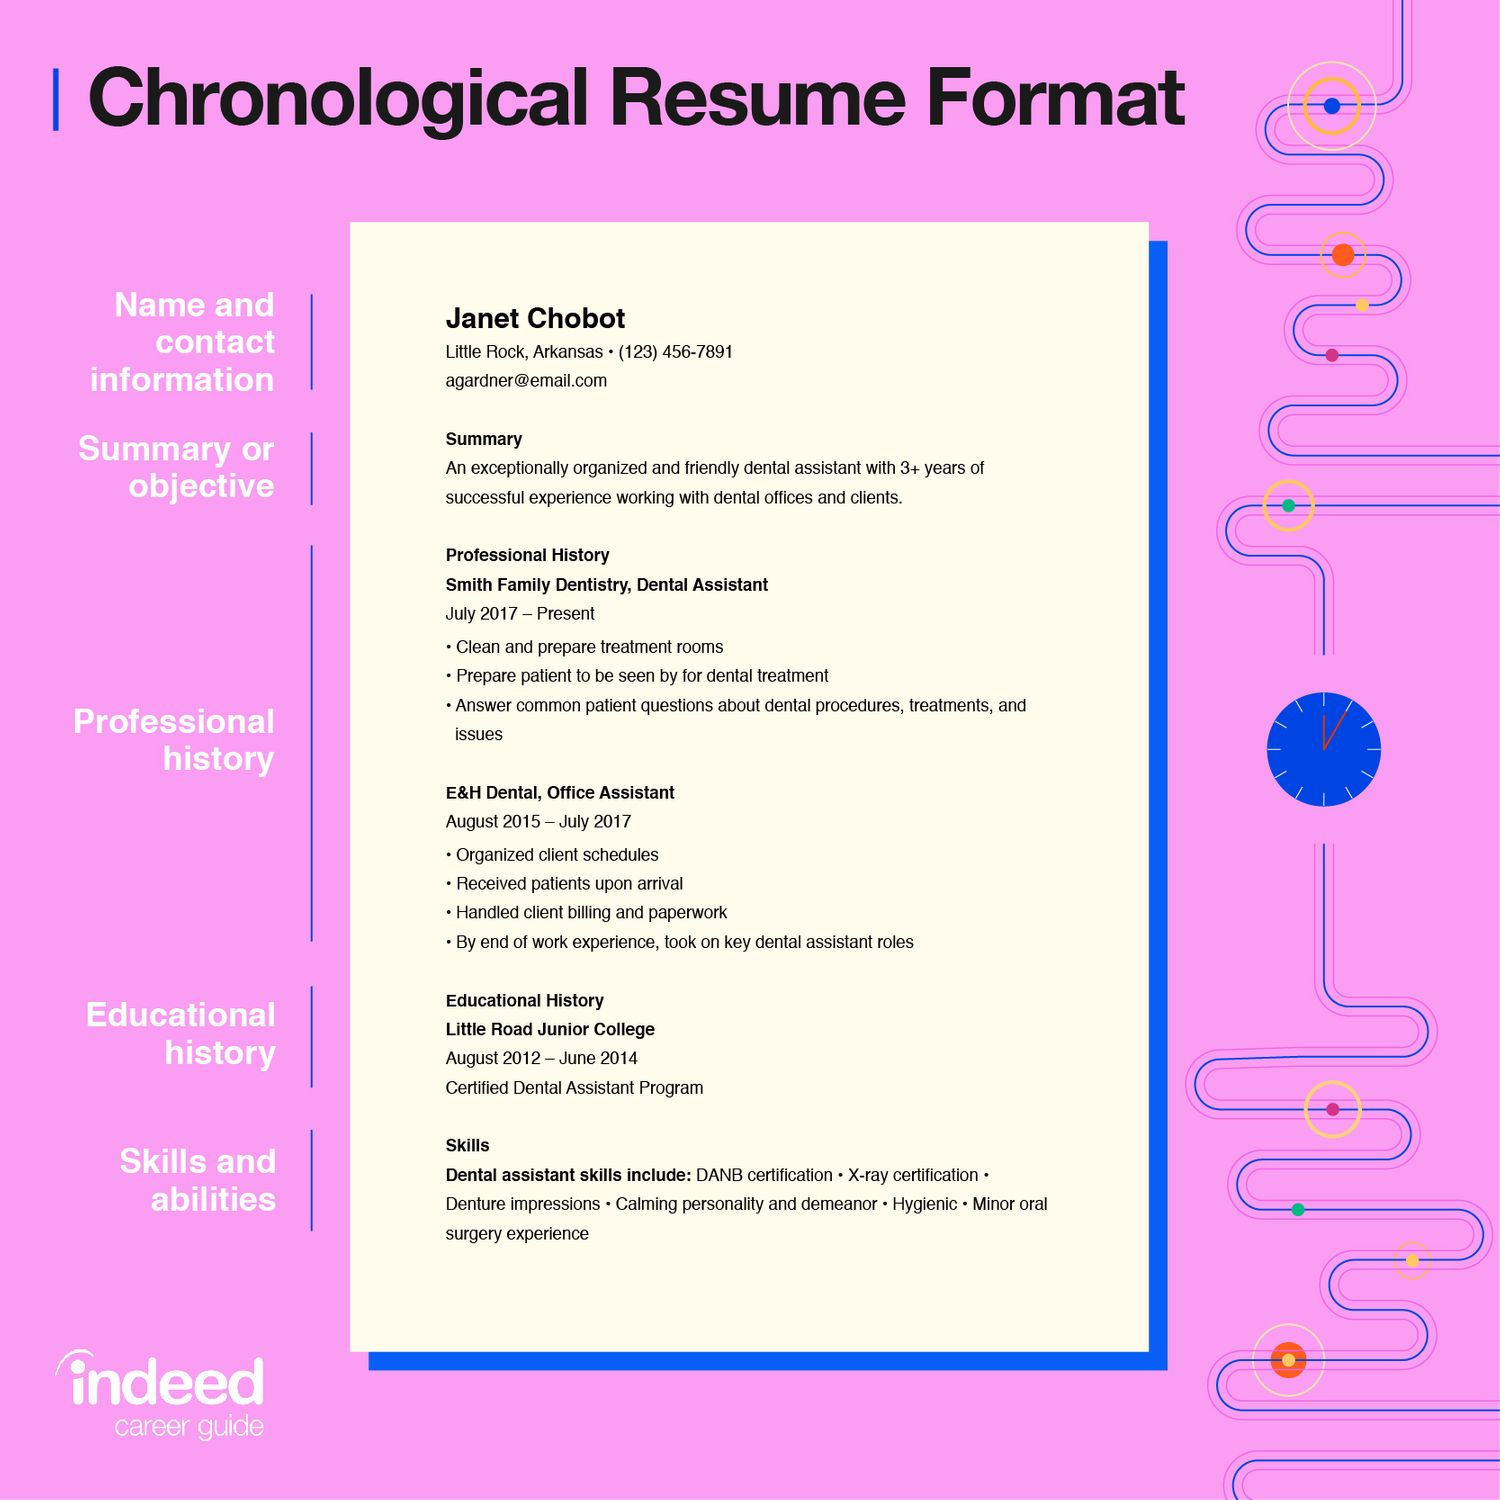 to make resume with examples indeed can go resized work ethic layout accomplishment Resume Where Can I Go To Make A Resume